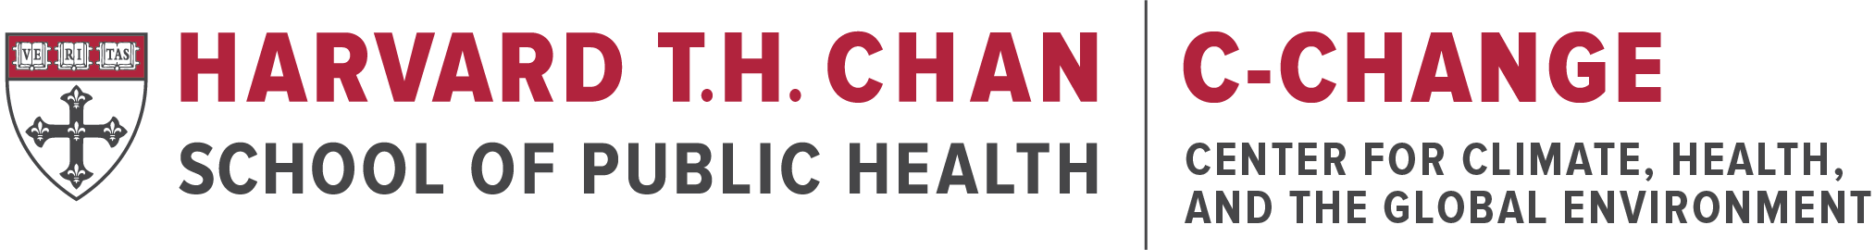 C-CHANGE | Harvard T.H. Chan School of Public Health